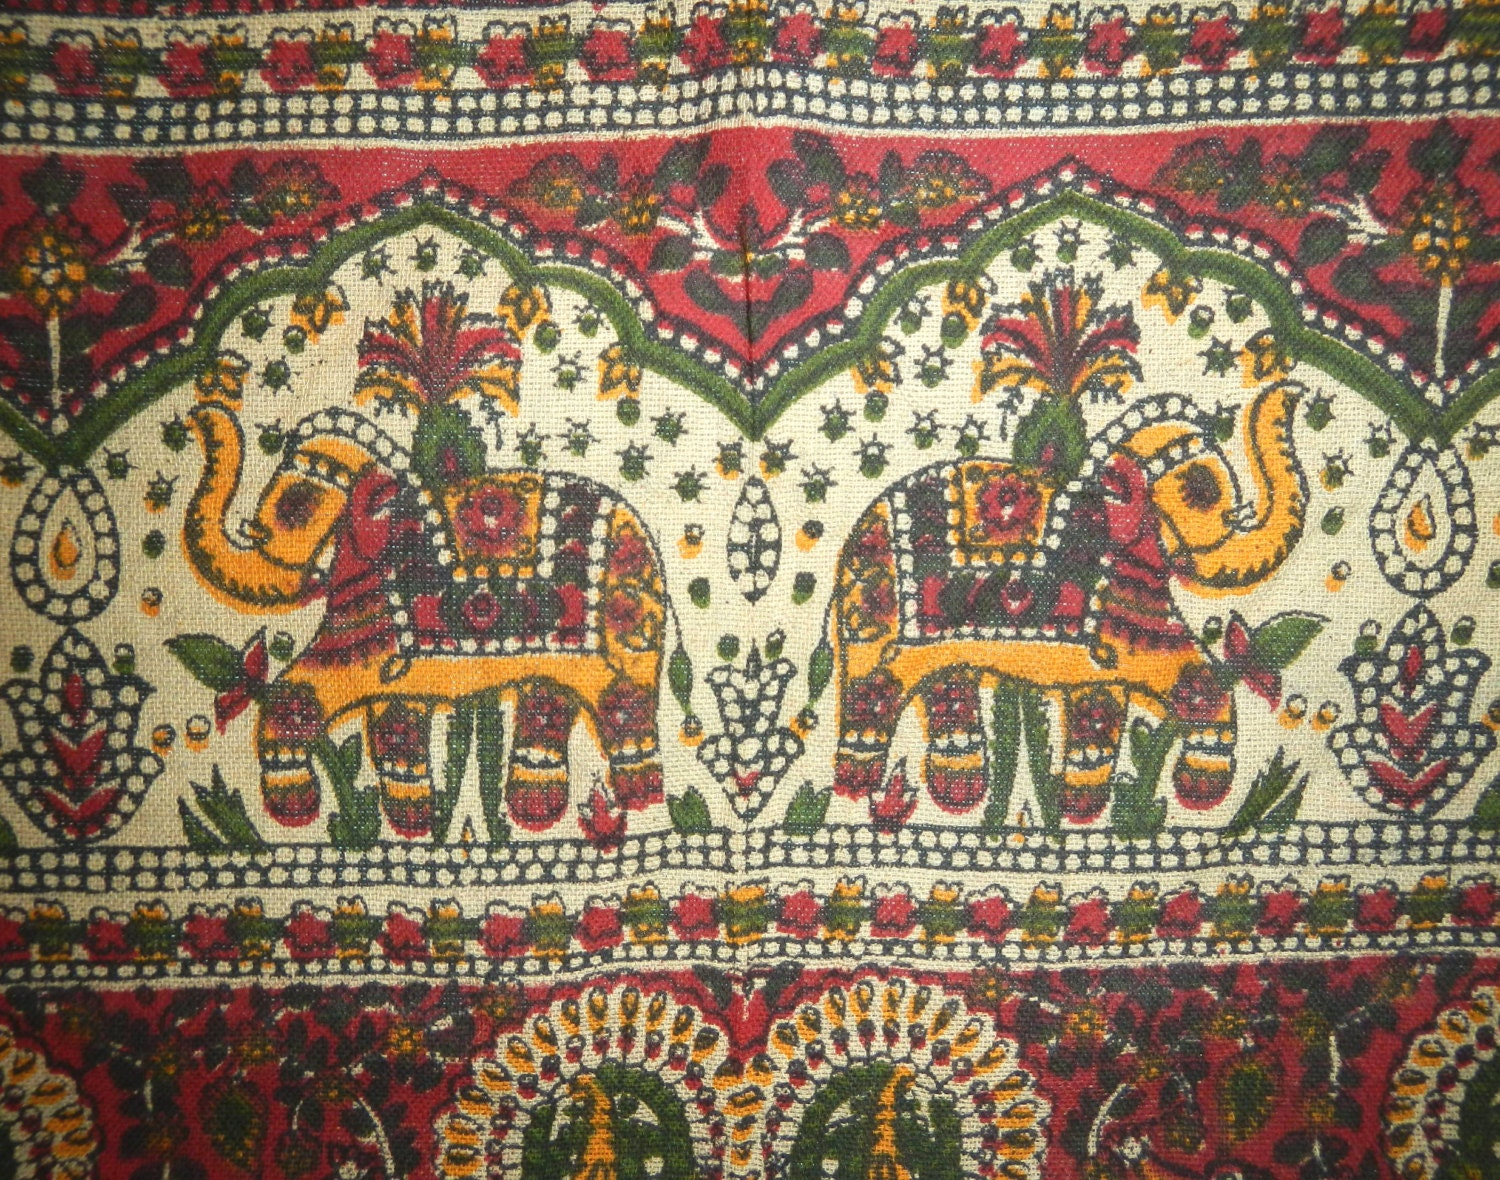 Hippie Tapestry Fabric Bohemian Indian Paisley Elephant